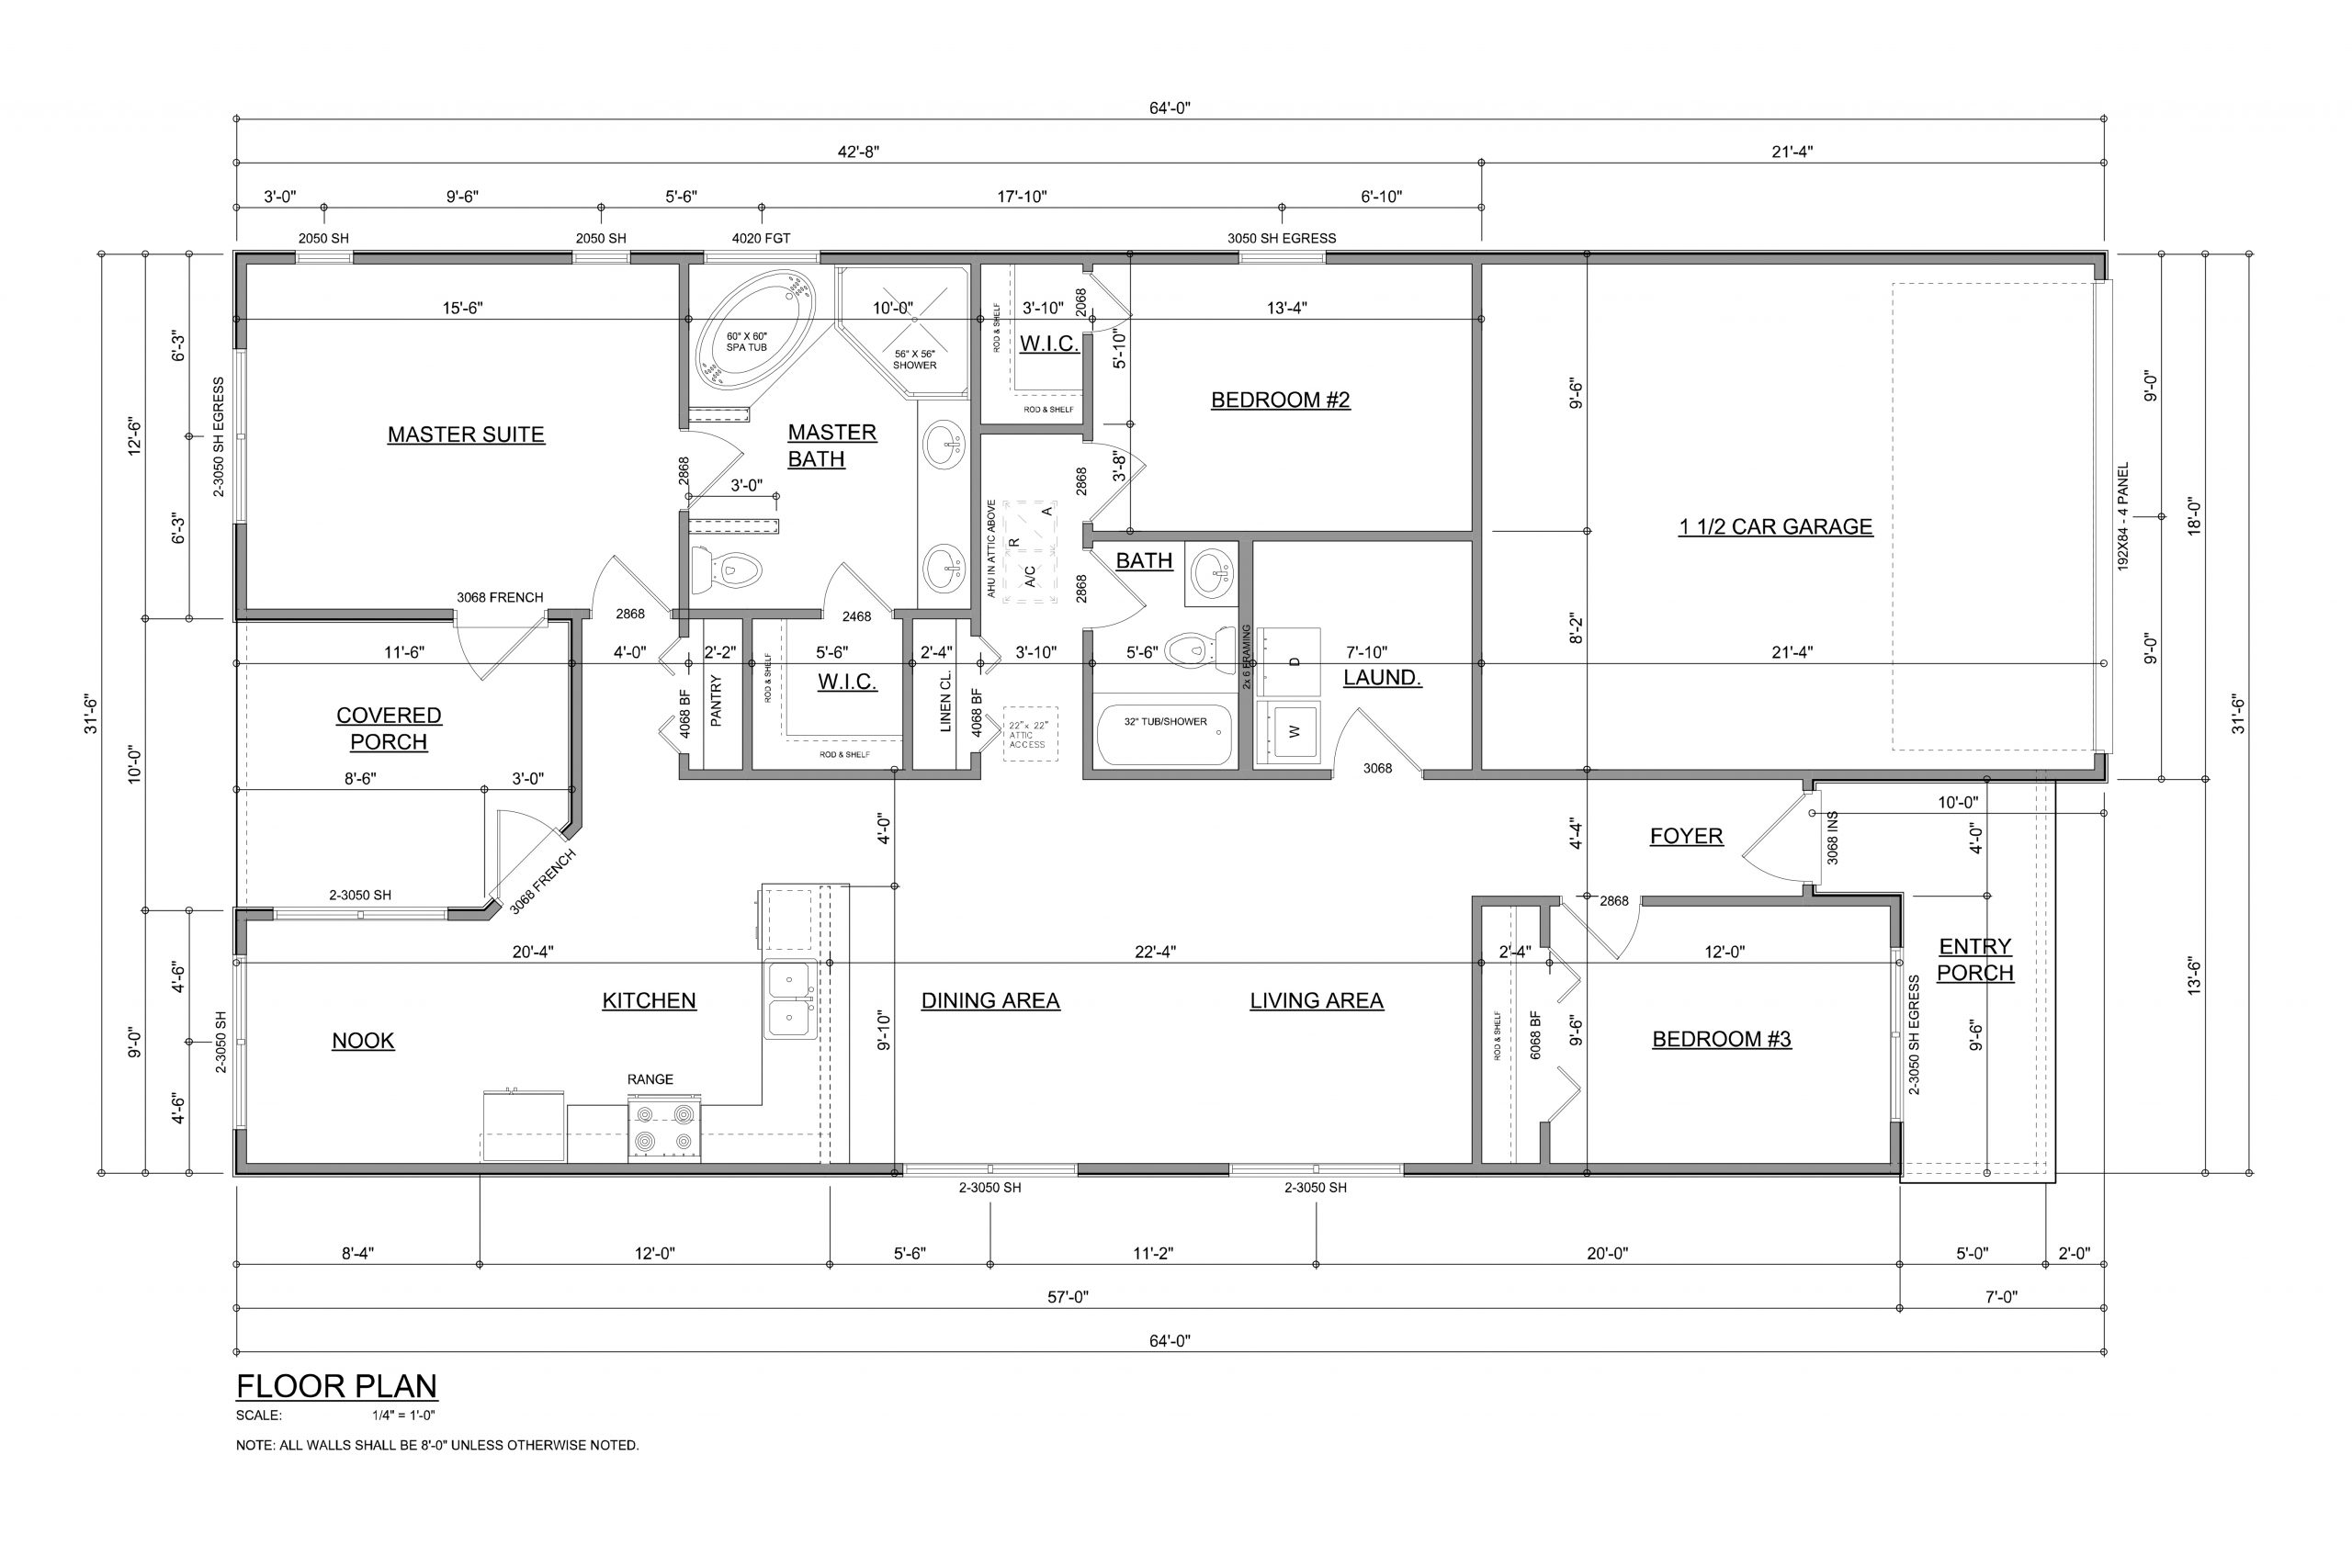 Renegade Floor Plan by Devoro Homes